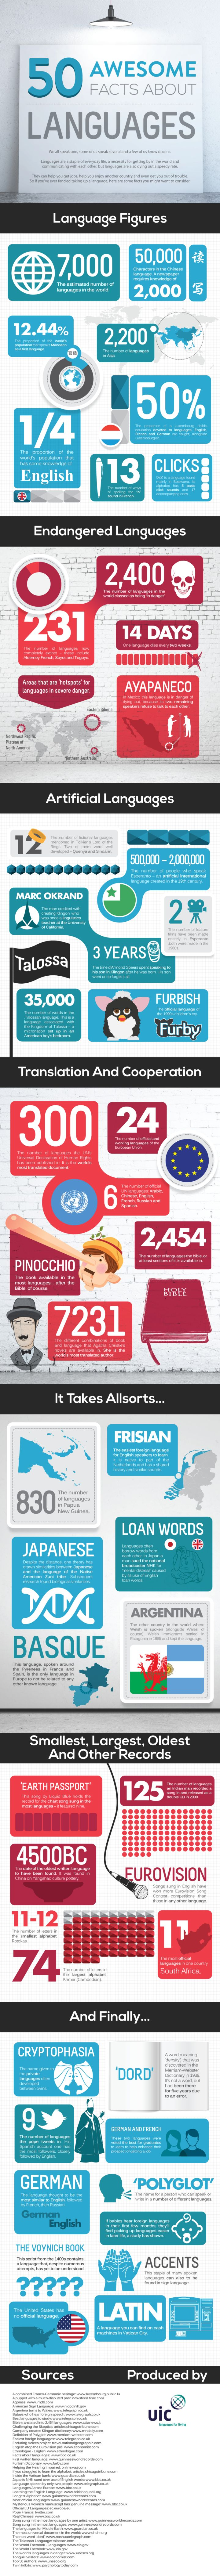 50 Awesome Facts About Languages. Language diffusion, isolation, and extinction are all covered in AP Human Geography. This infographic is outstanding! Even if your subject area does not specifically cover language- it is a central issue developing due to a more connected world. Those who see no economic benefit of their native language will cease to speak it, however, with many tribal languages having no literary tradition, the knowledge and culture of natives is lost with the last speaker.